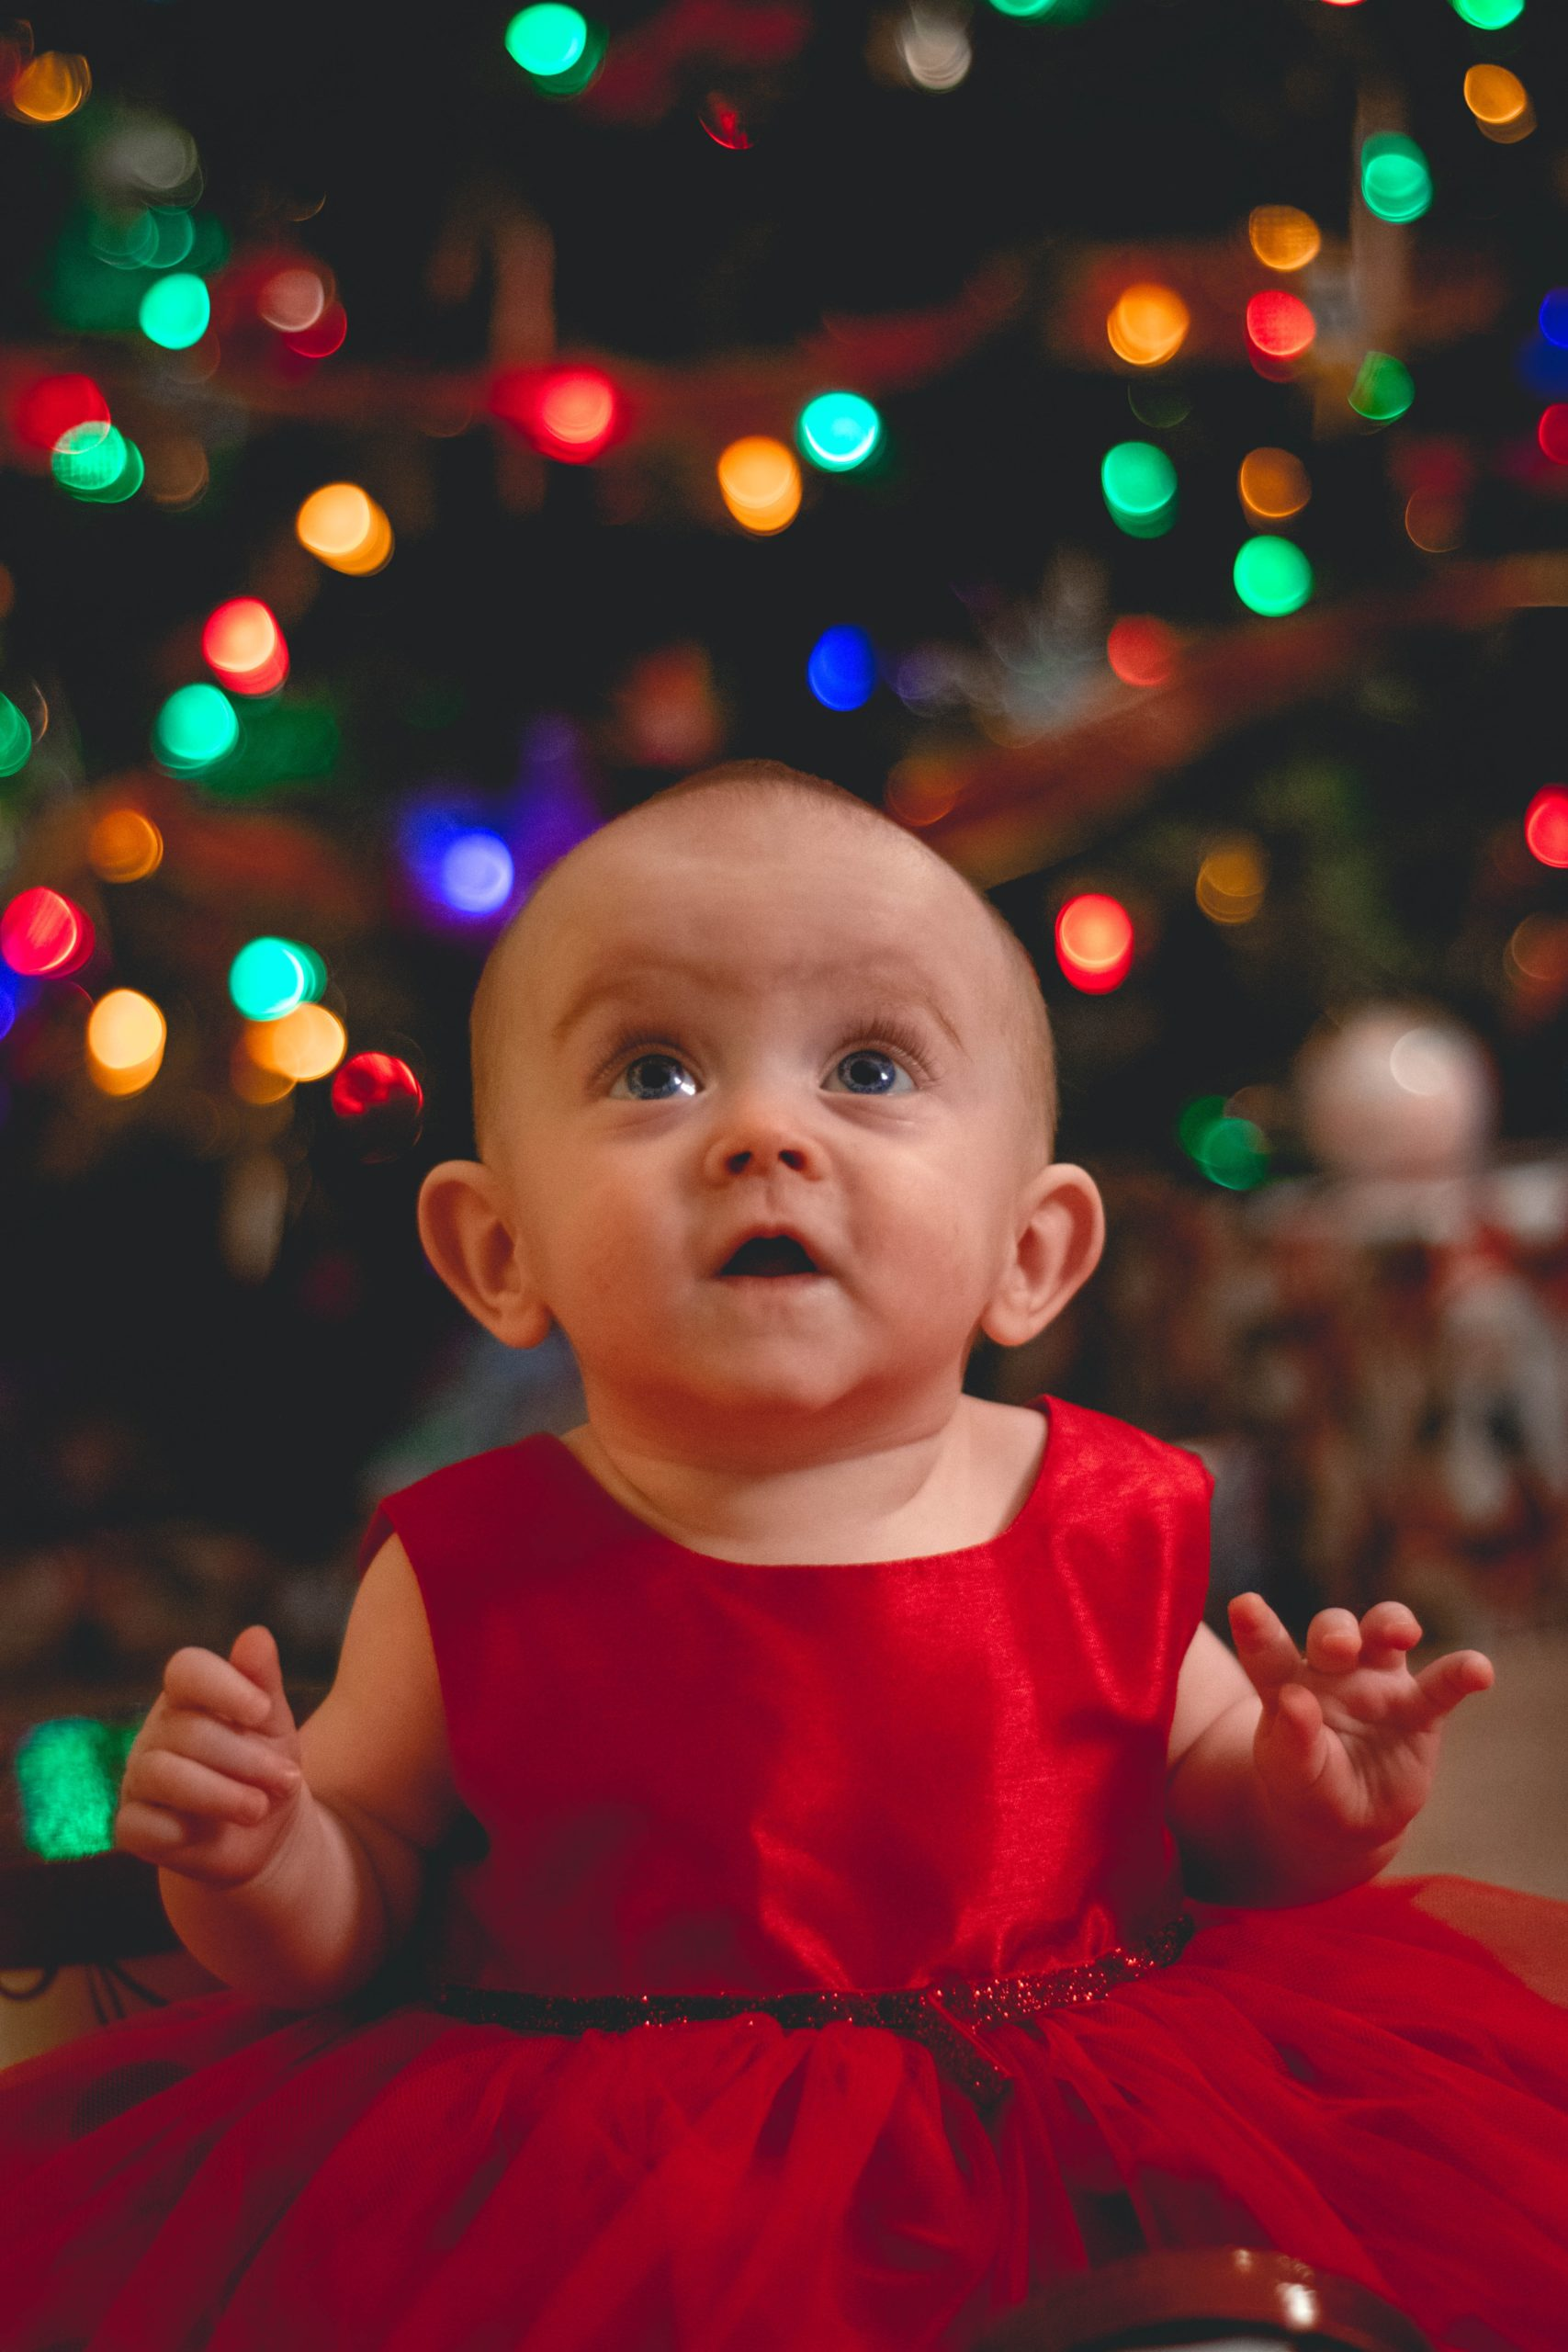 Christmas activities: a baby in a red dress looks up, with a blurry christmas tree in the background